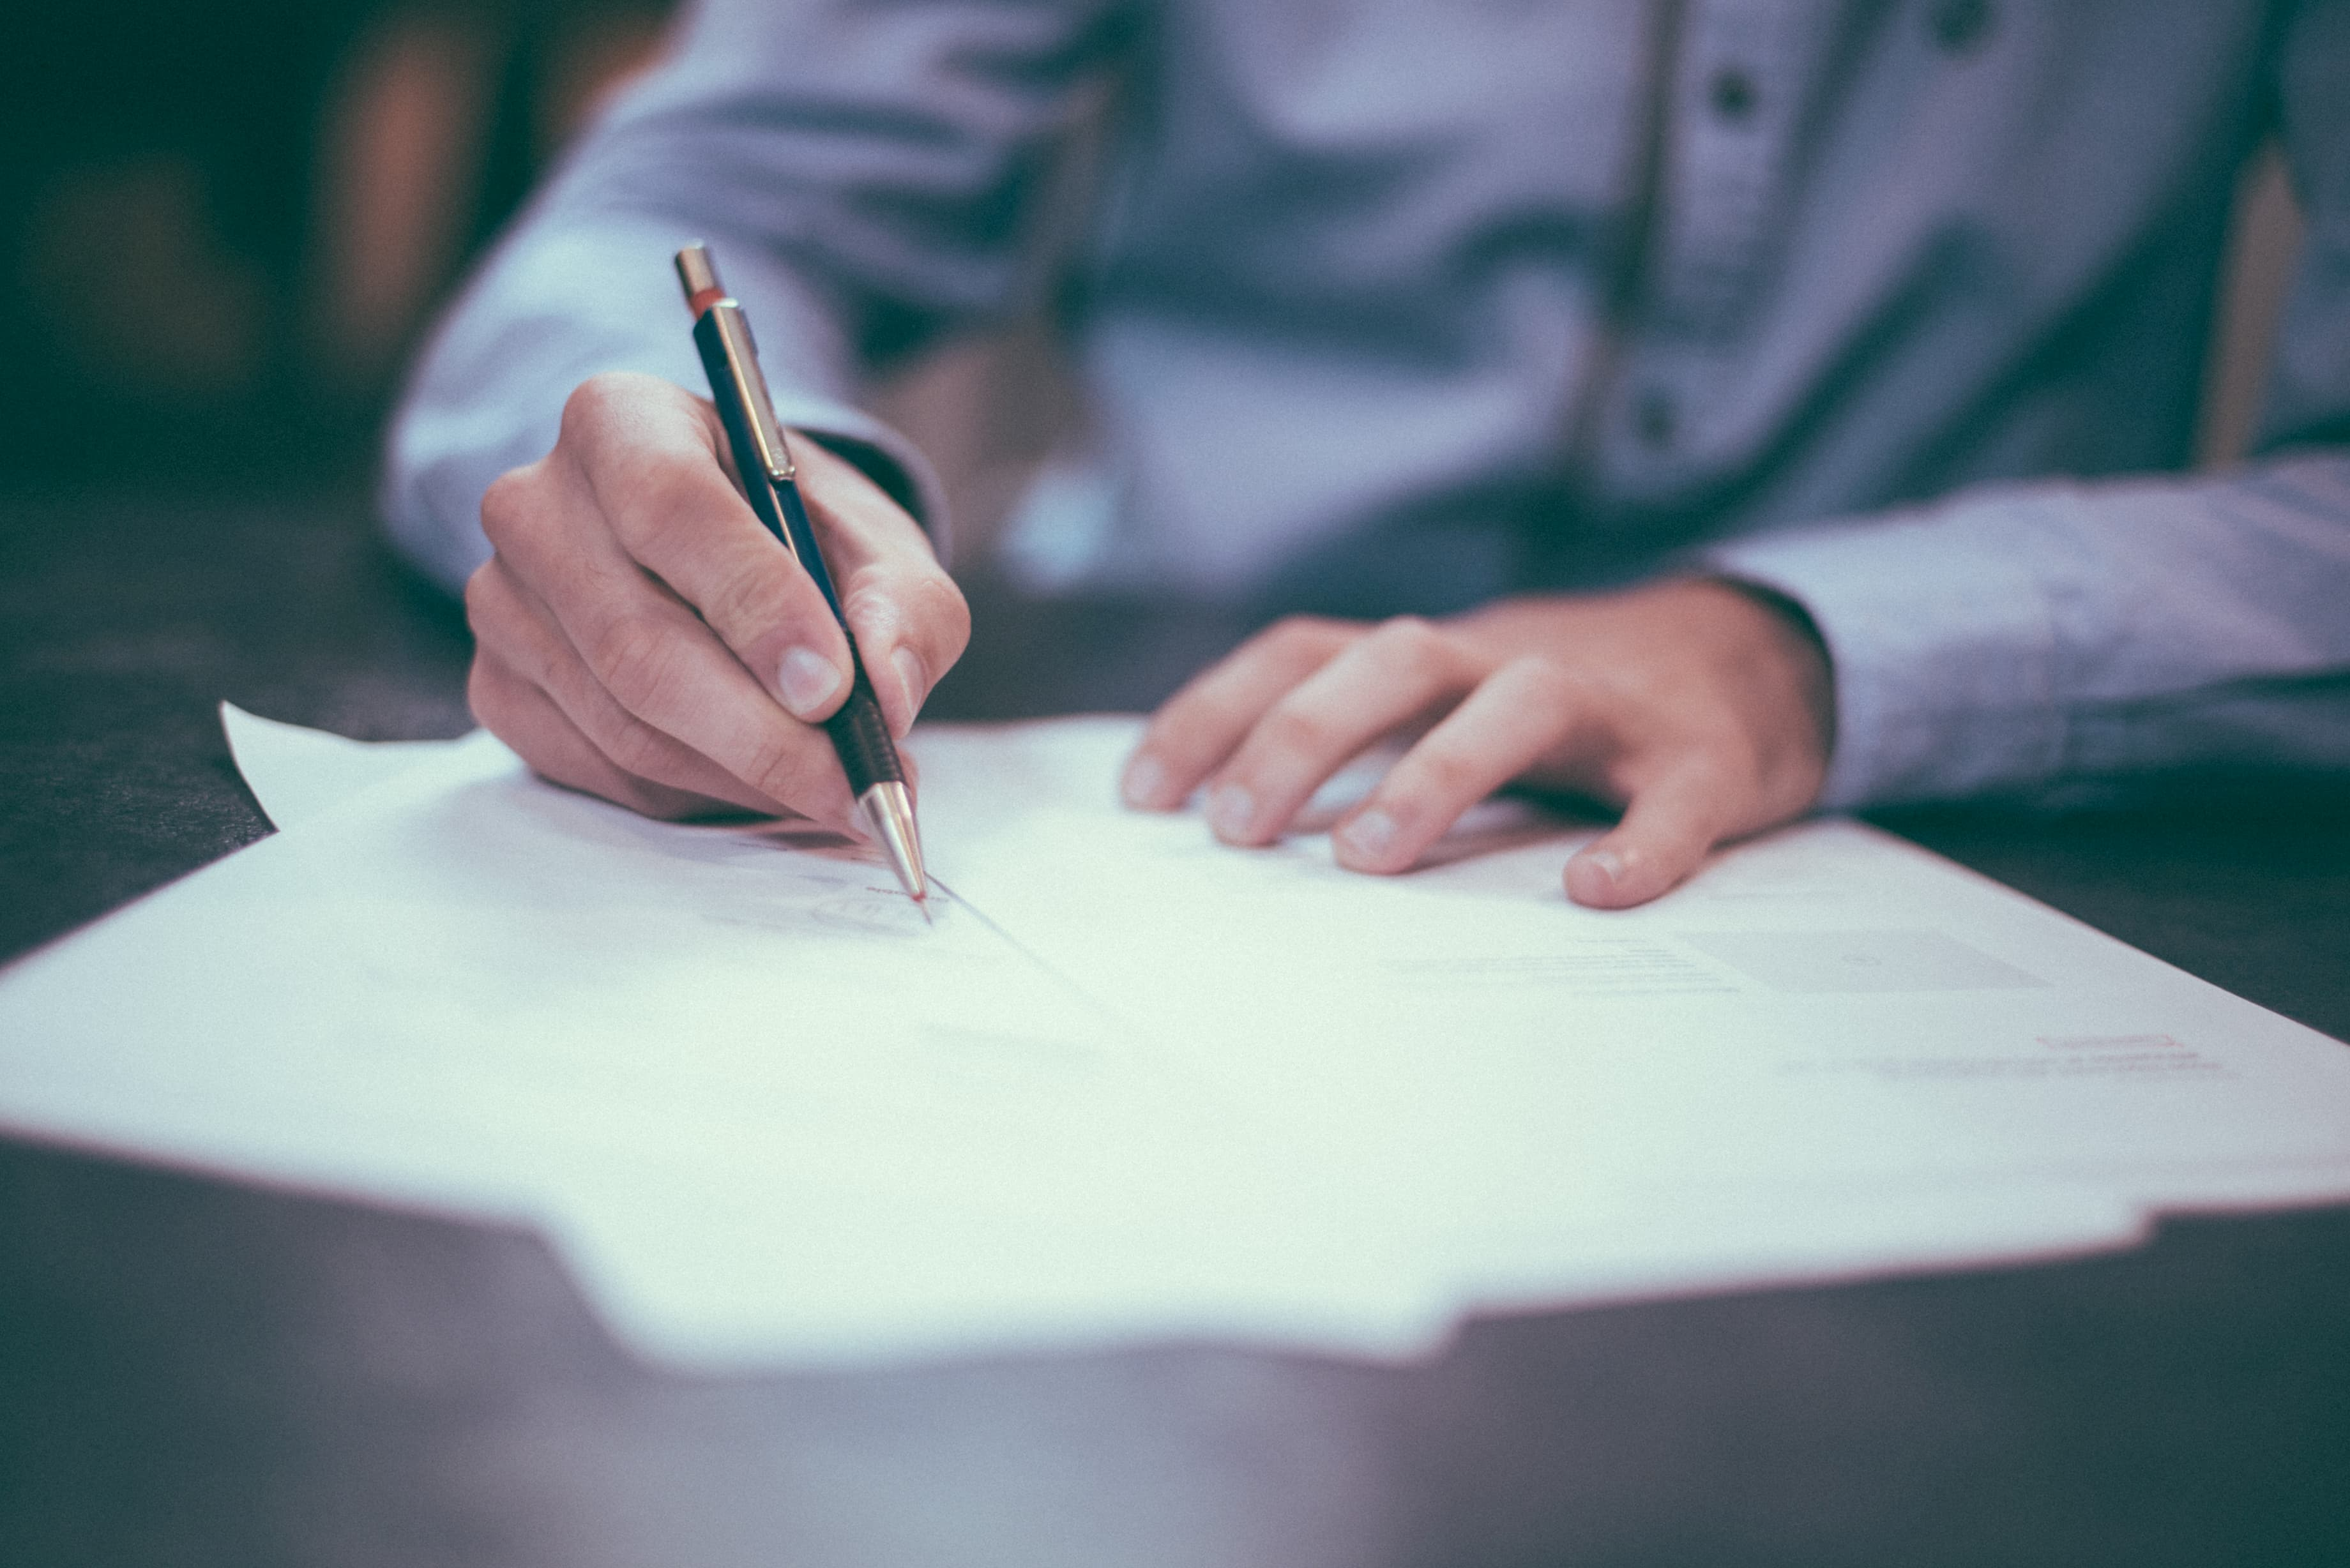 Man signing refinance documents with pen